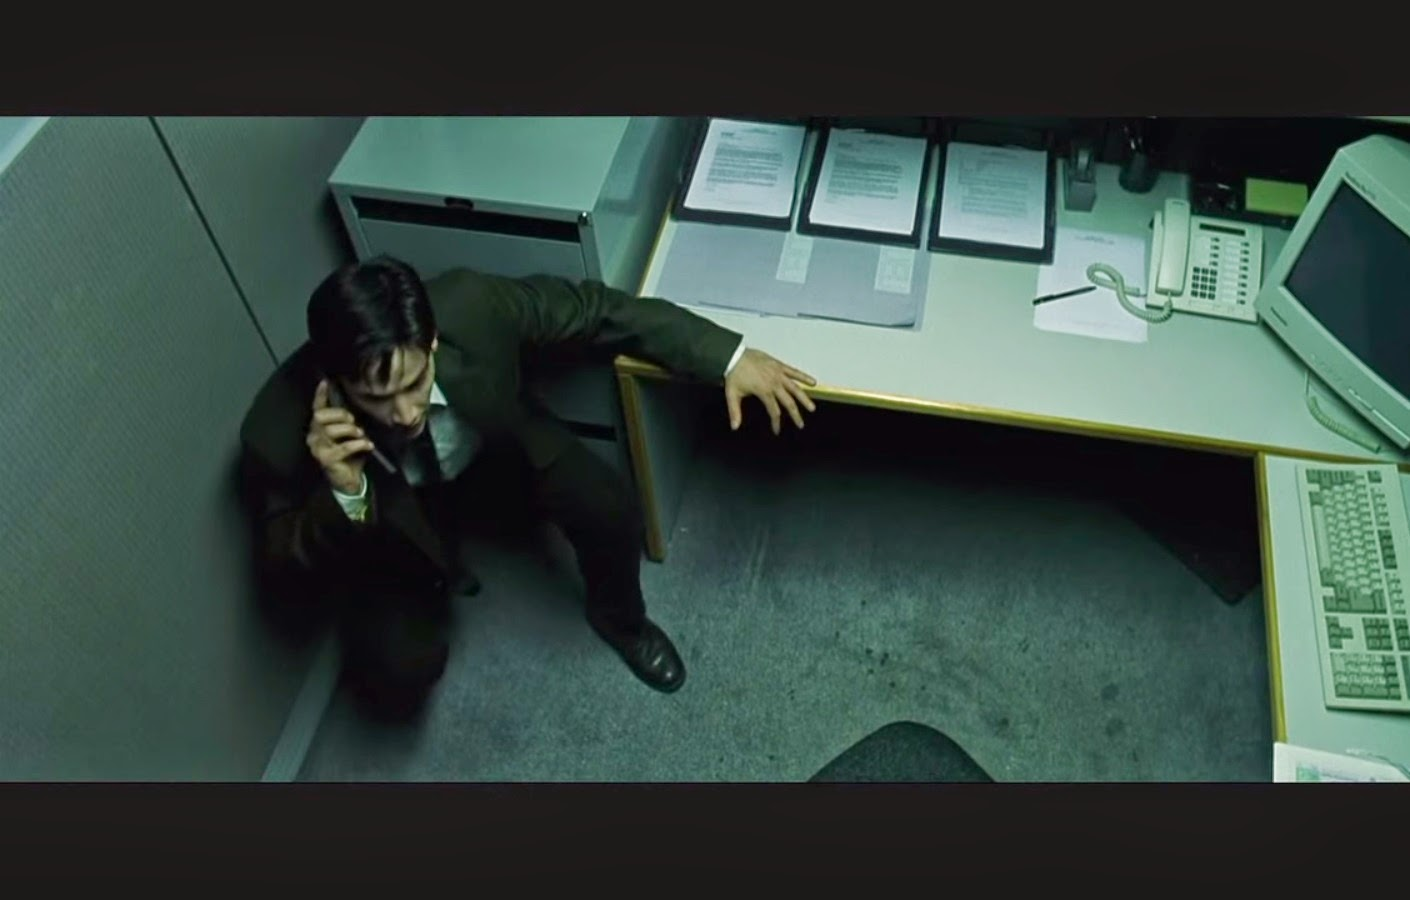 Neo's Cubicle